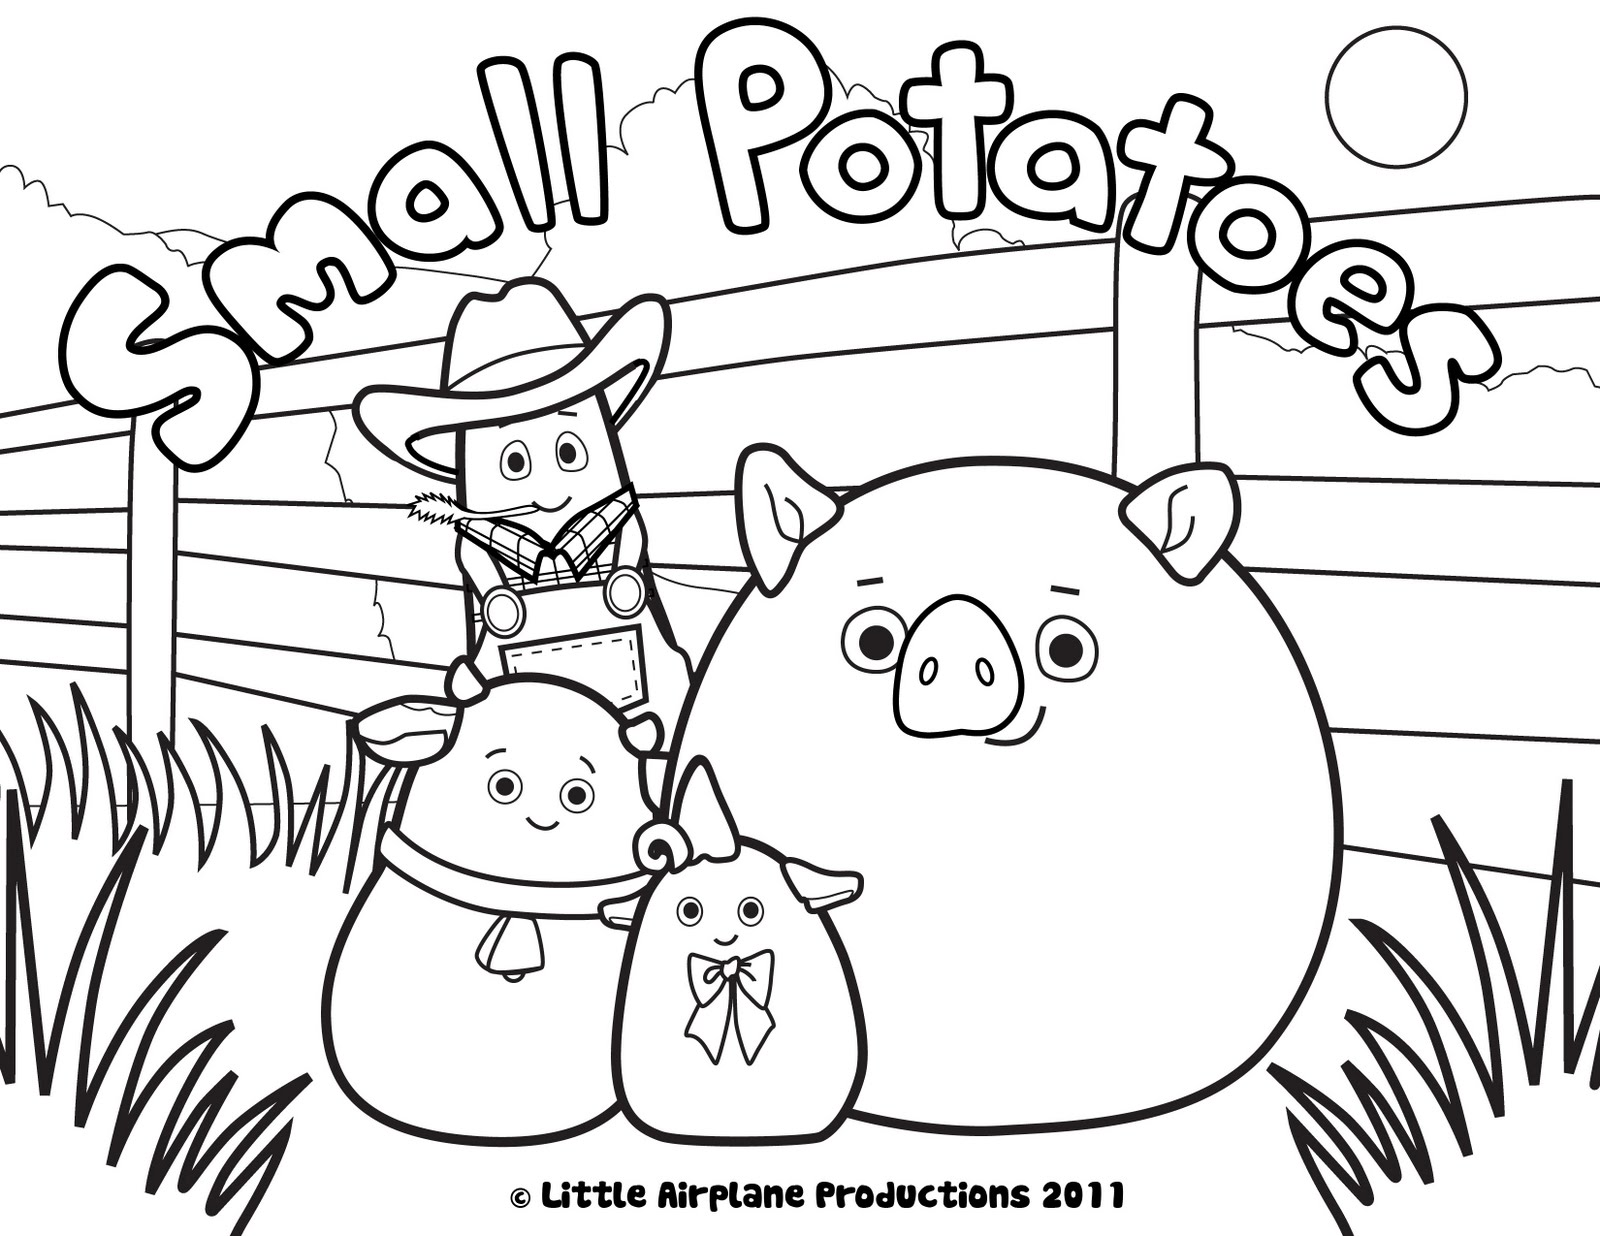 Potato 1 coloring page free printable coloring pages - Sunday December 4 2011